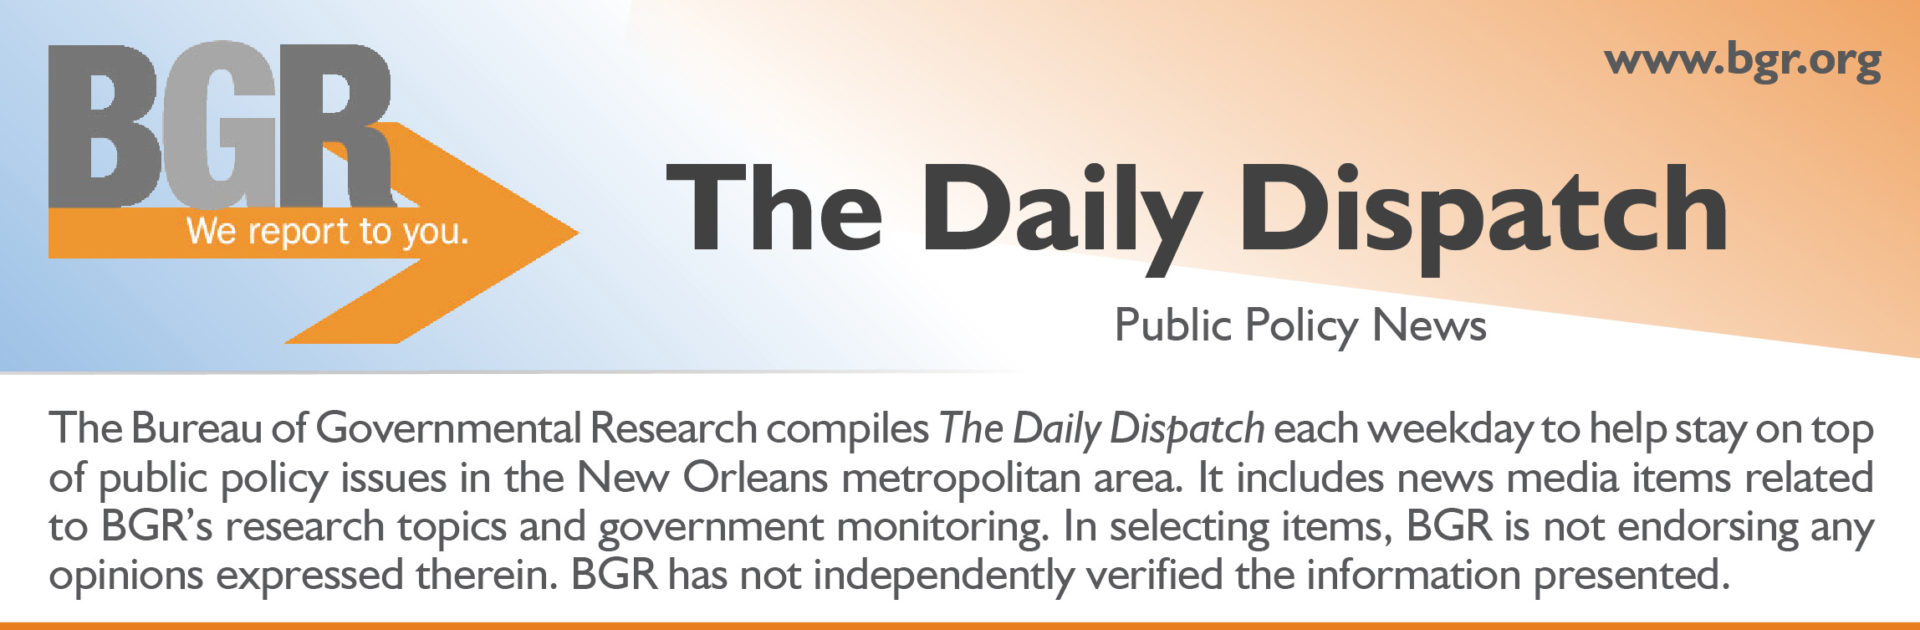 The Daily Dispatch